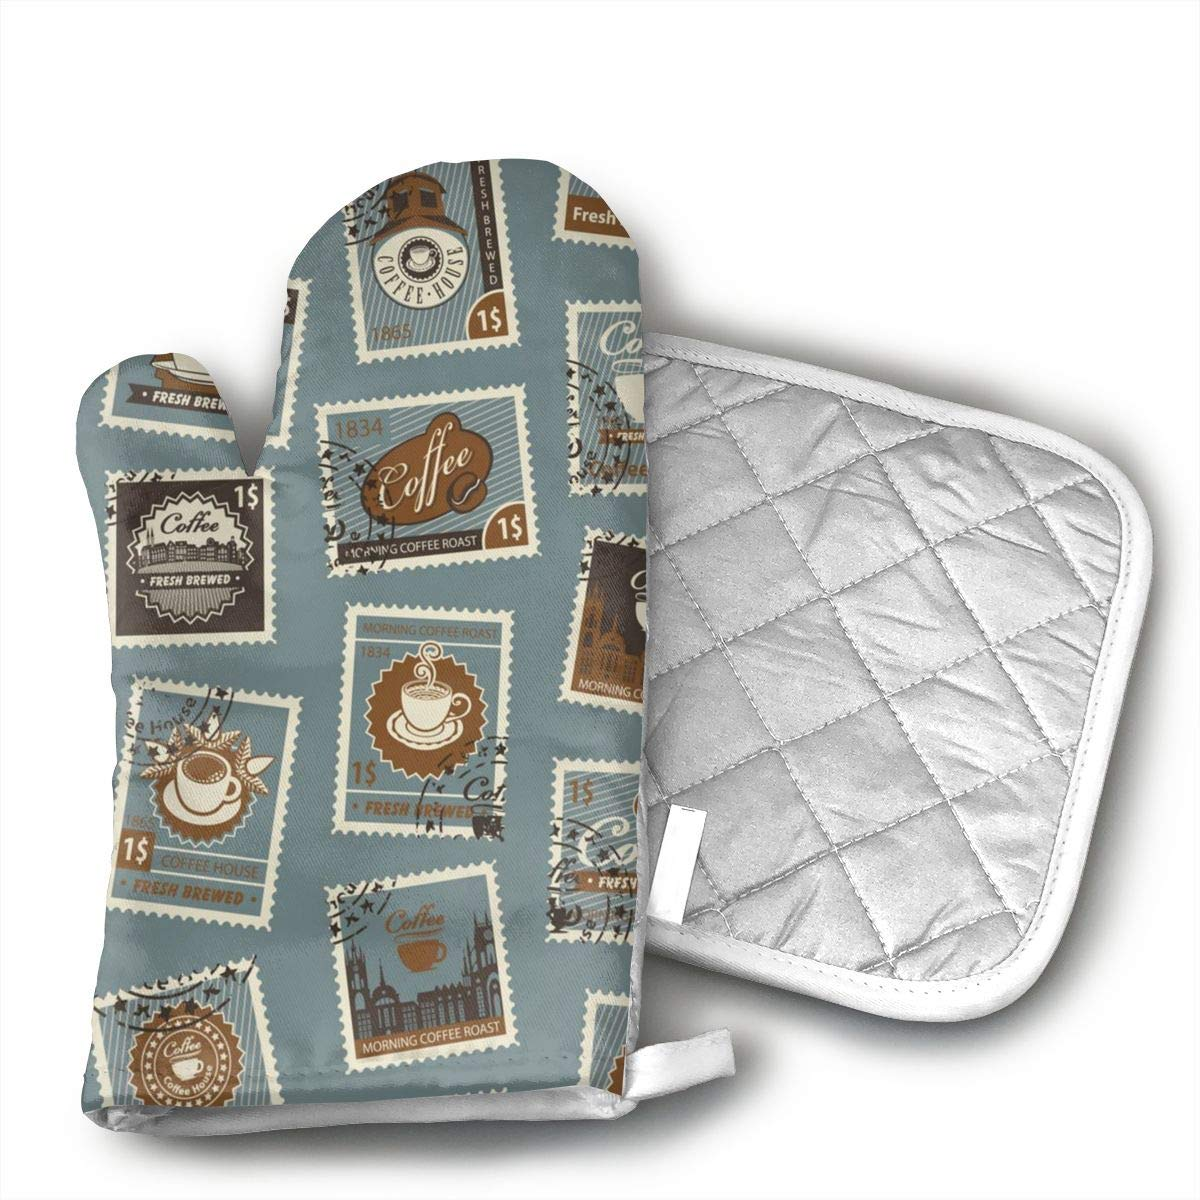 UYRHFS Postage Stamps Coffee Theme Oven Mitts and Pot Holder Kitchen Set with, Heat Resistant, Oven Gloves and Pot Holders 2pcs Set for BBQ Cooking Baking